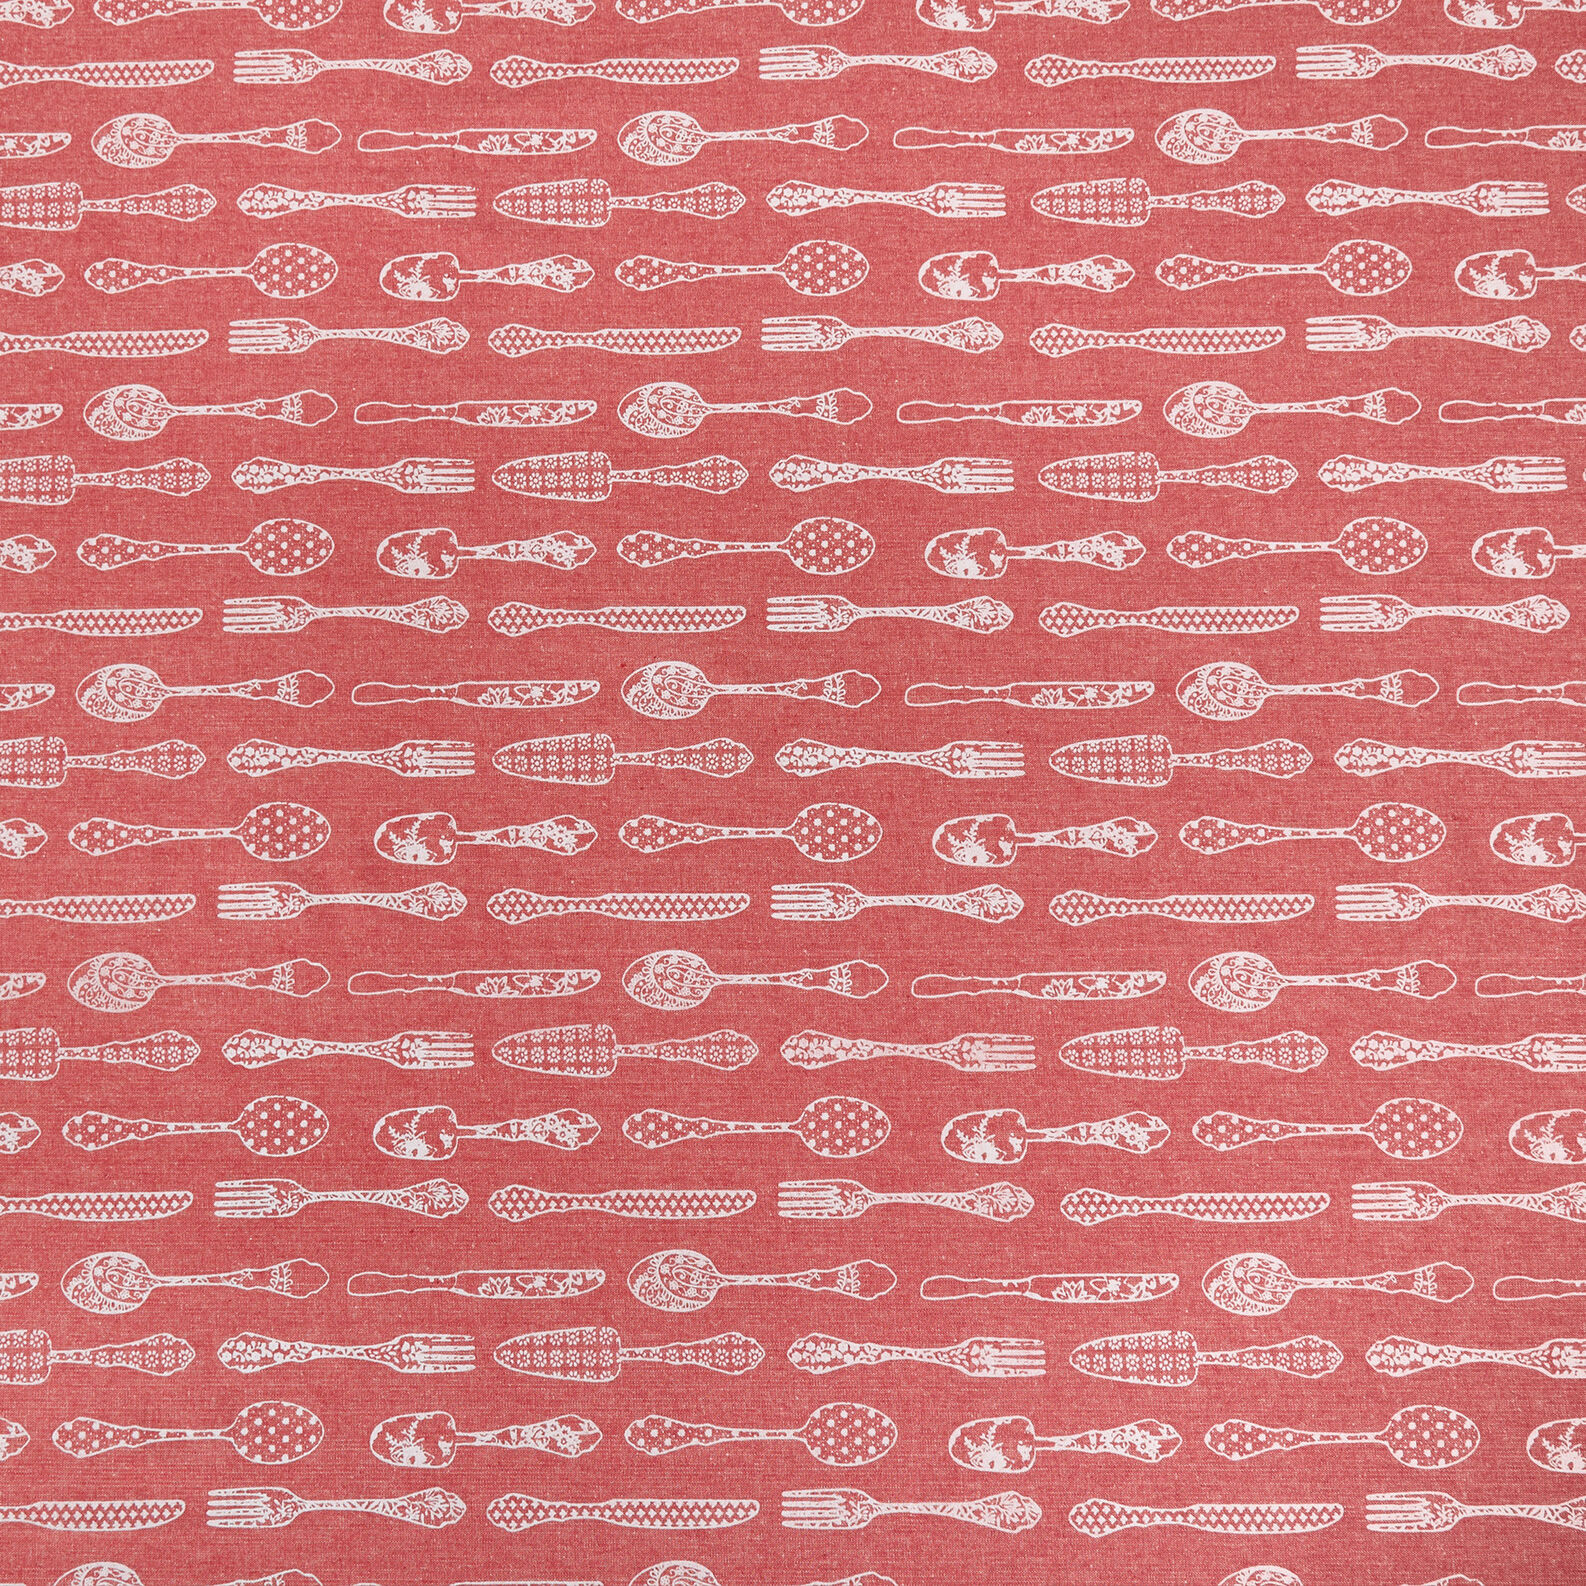 100% cotton tablecloth with cutlery print